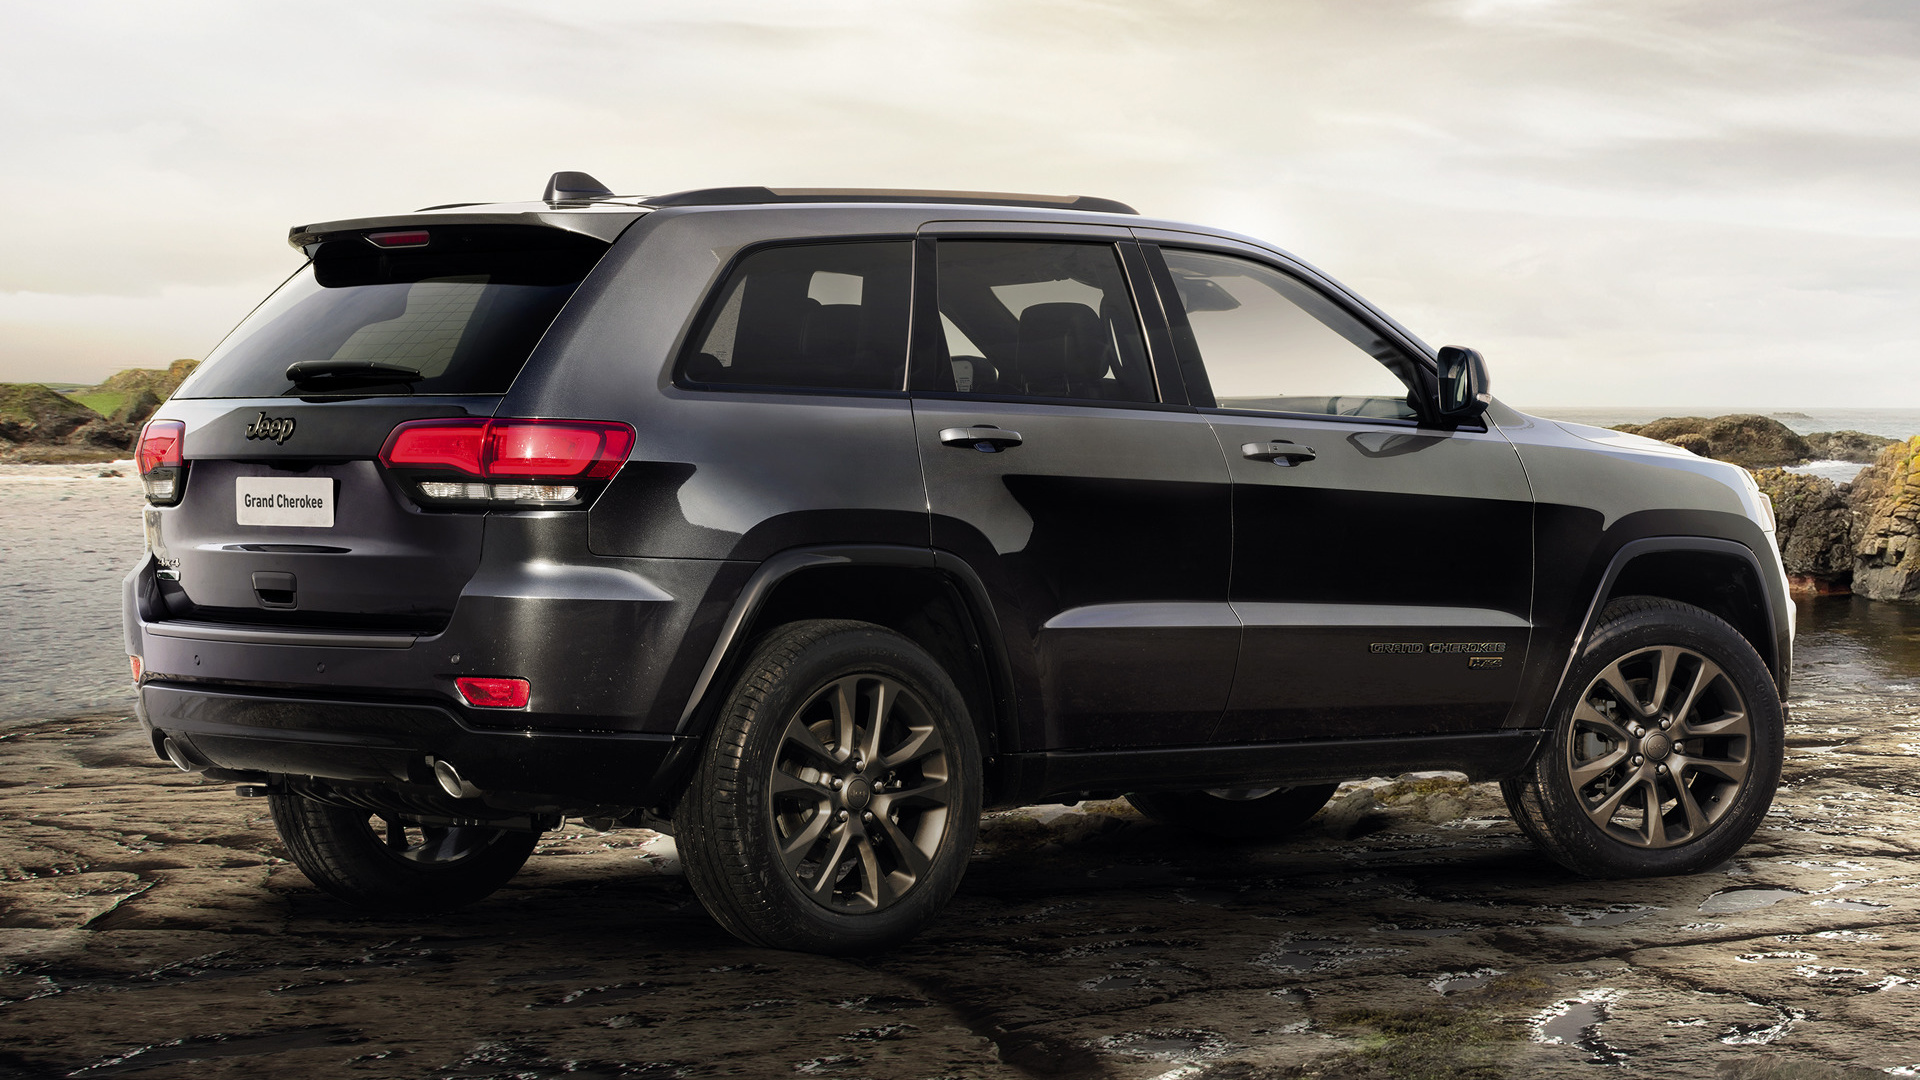 Jeep Grand Cherokee 75th Anniversary (2016) EU Wallpapers and HD Images - Car Pixel